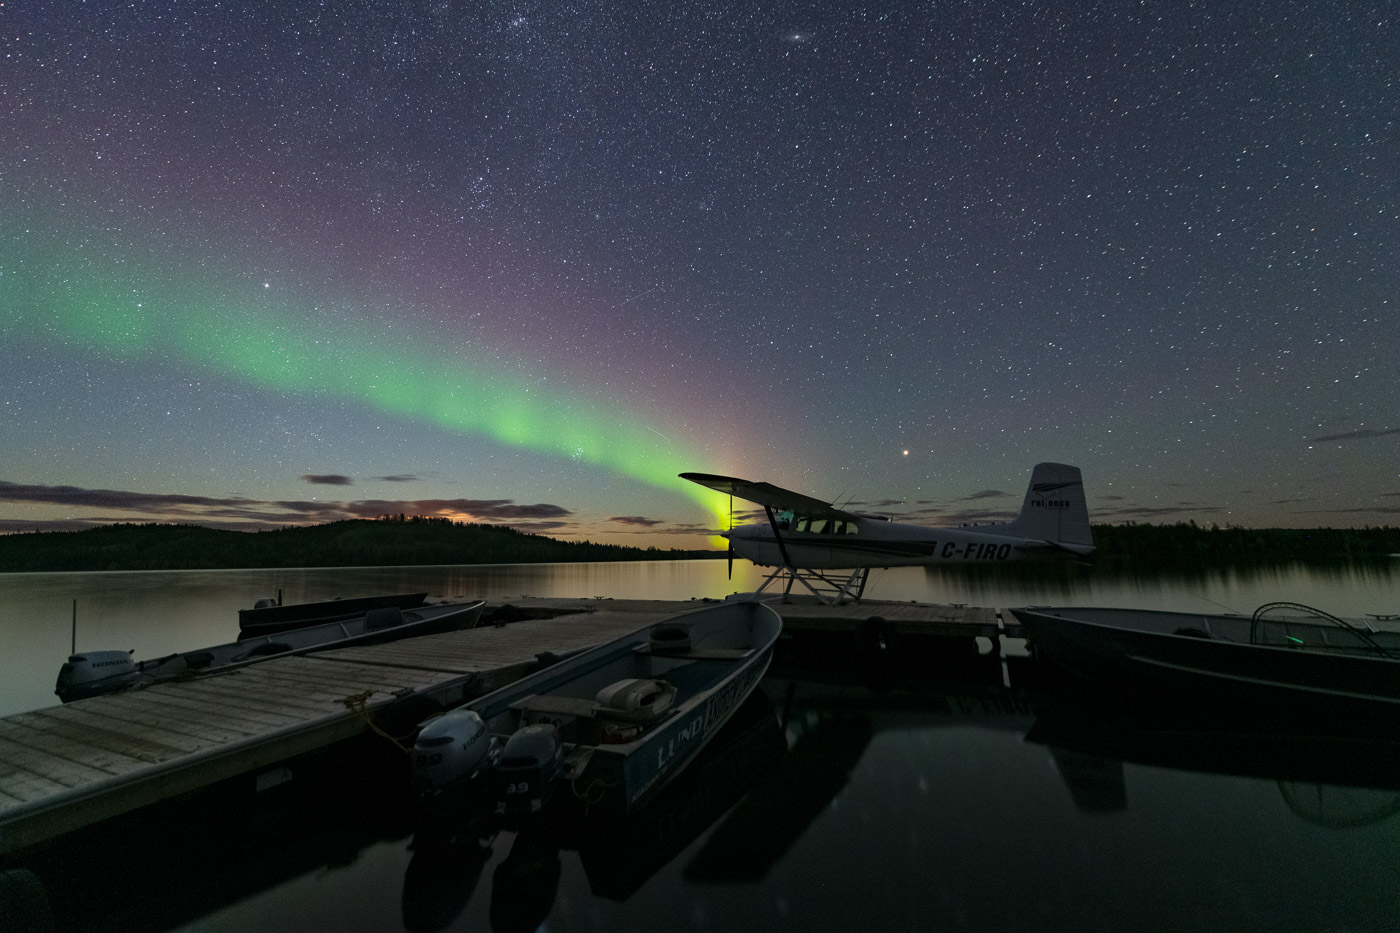 Float plane and fishing boats docked while an aurora arc forms in starry sky